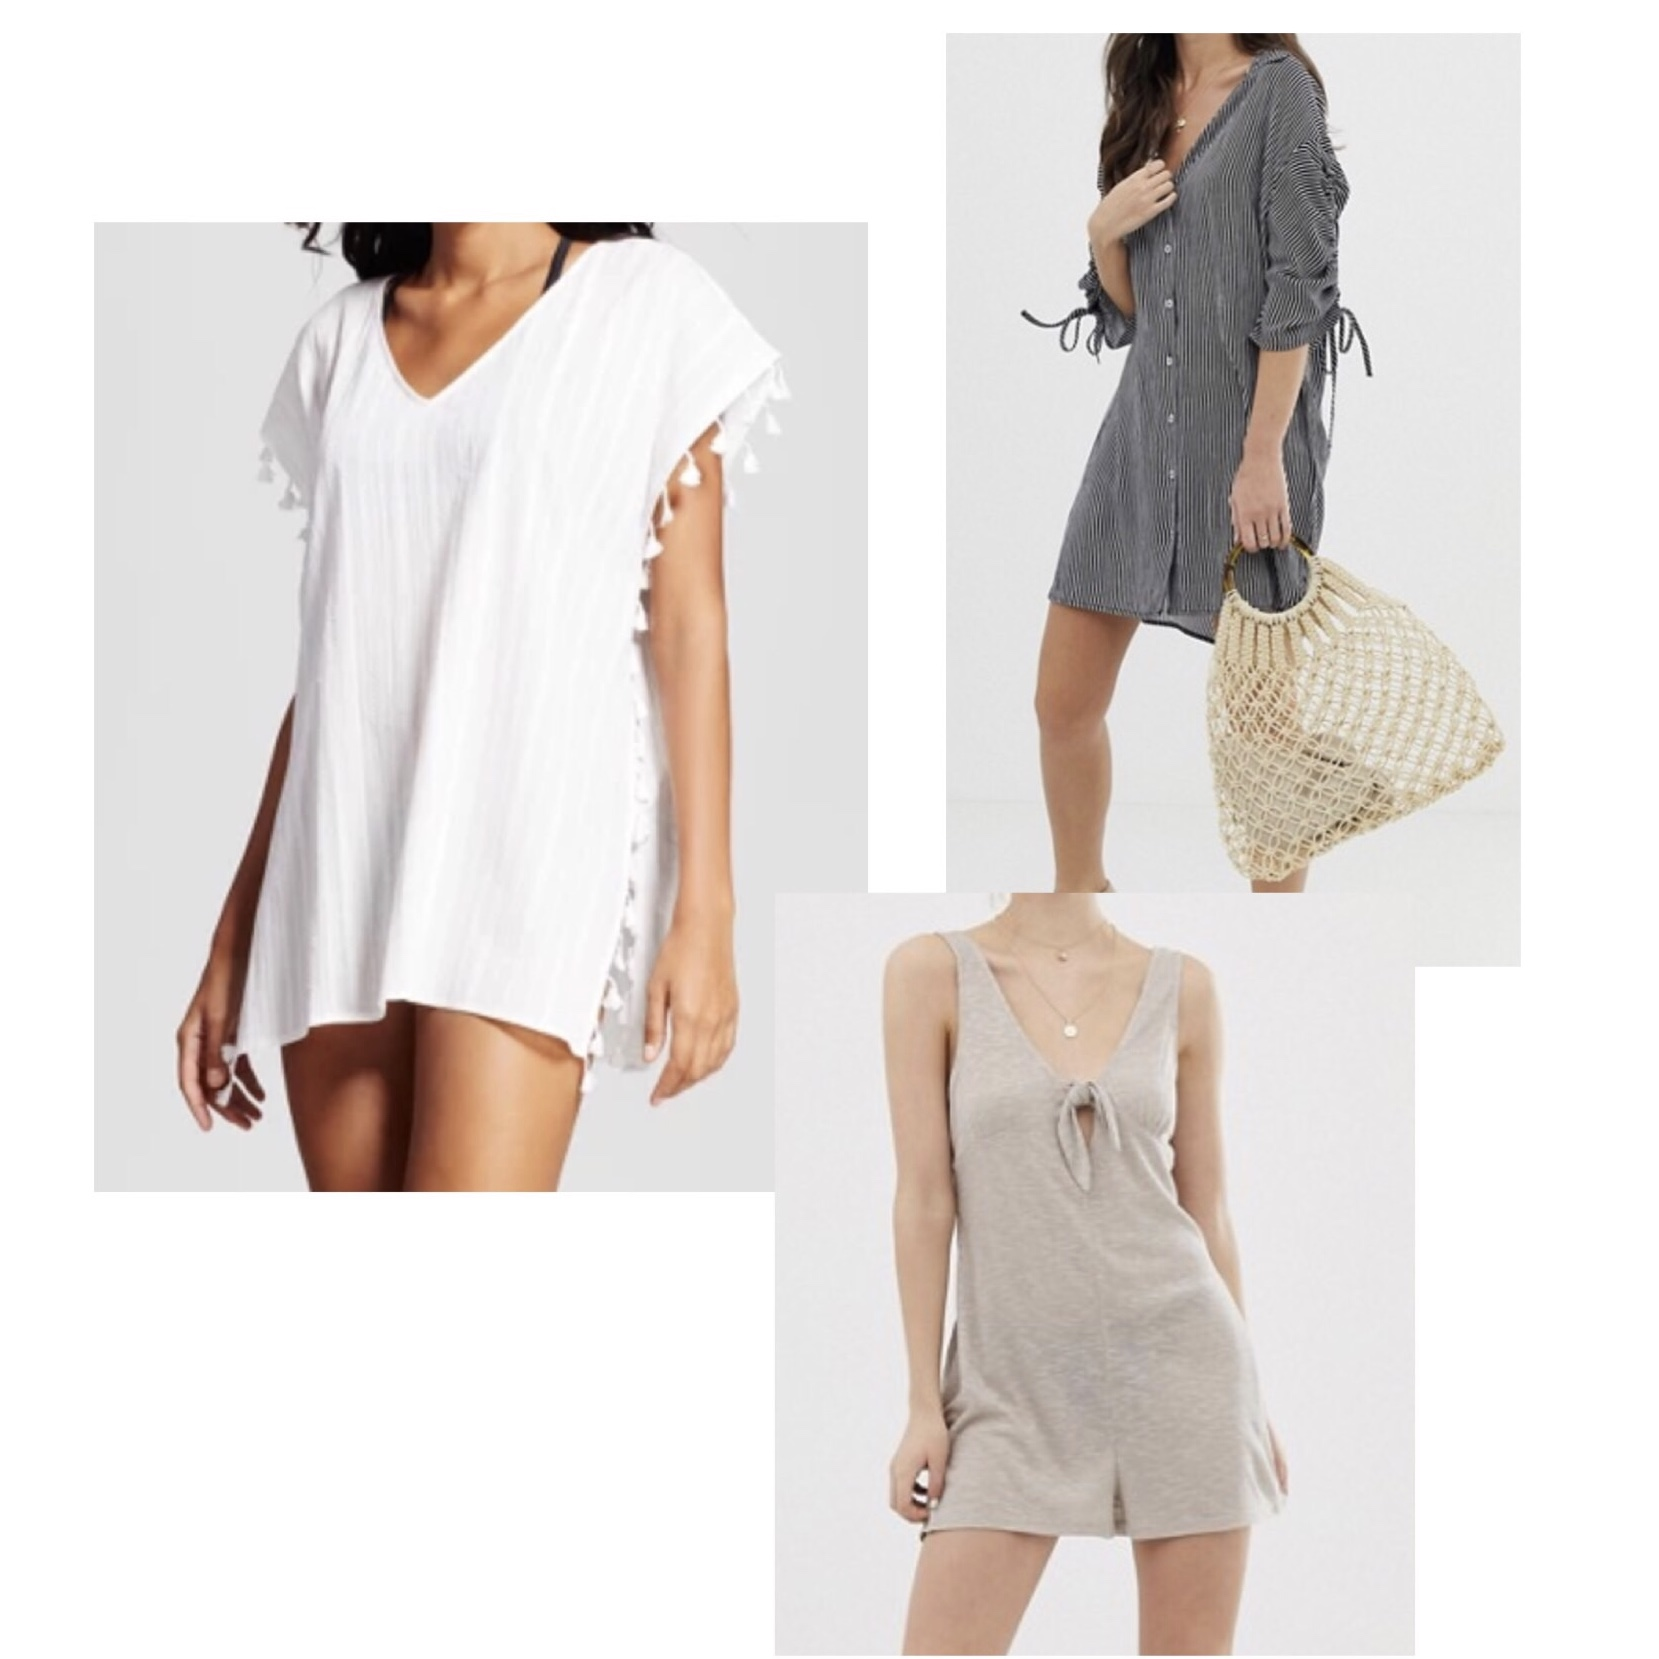 (Clockwise)  1.  Target Cover 2 Cover Tassel Trim Cover-Up Dress  - $25  2.  Asos Glamorous Beach Shirt  - $45  3.  Glamorous Easy Romper  - $35